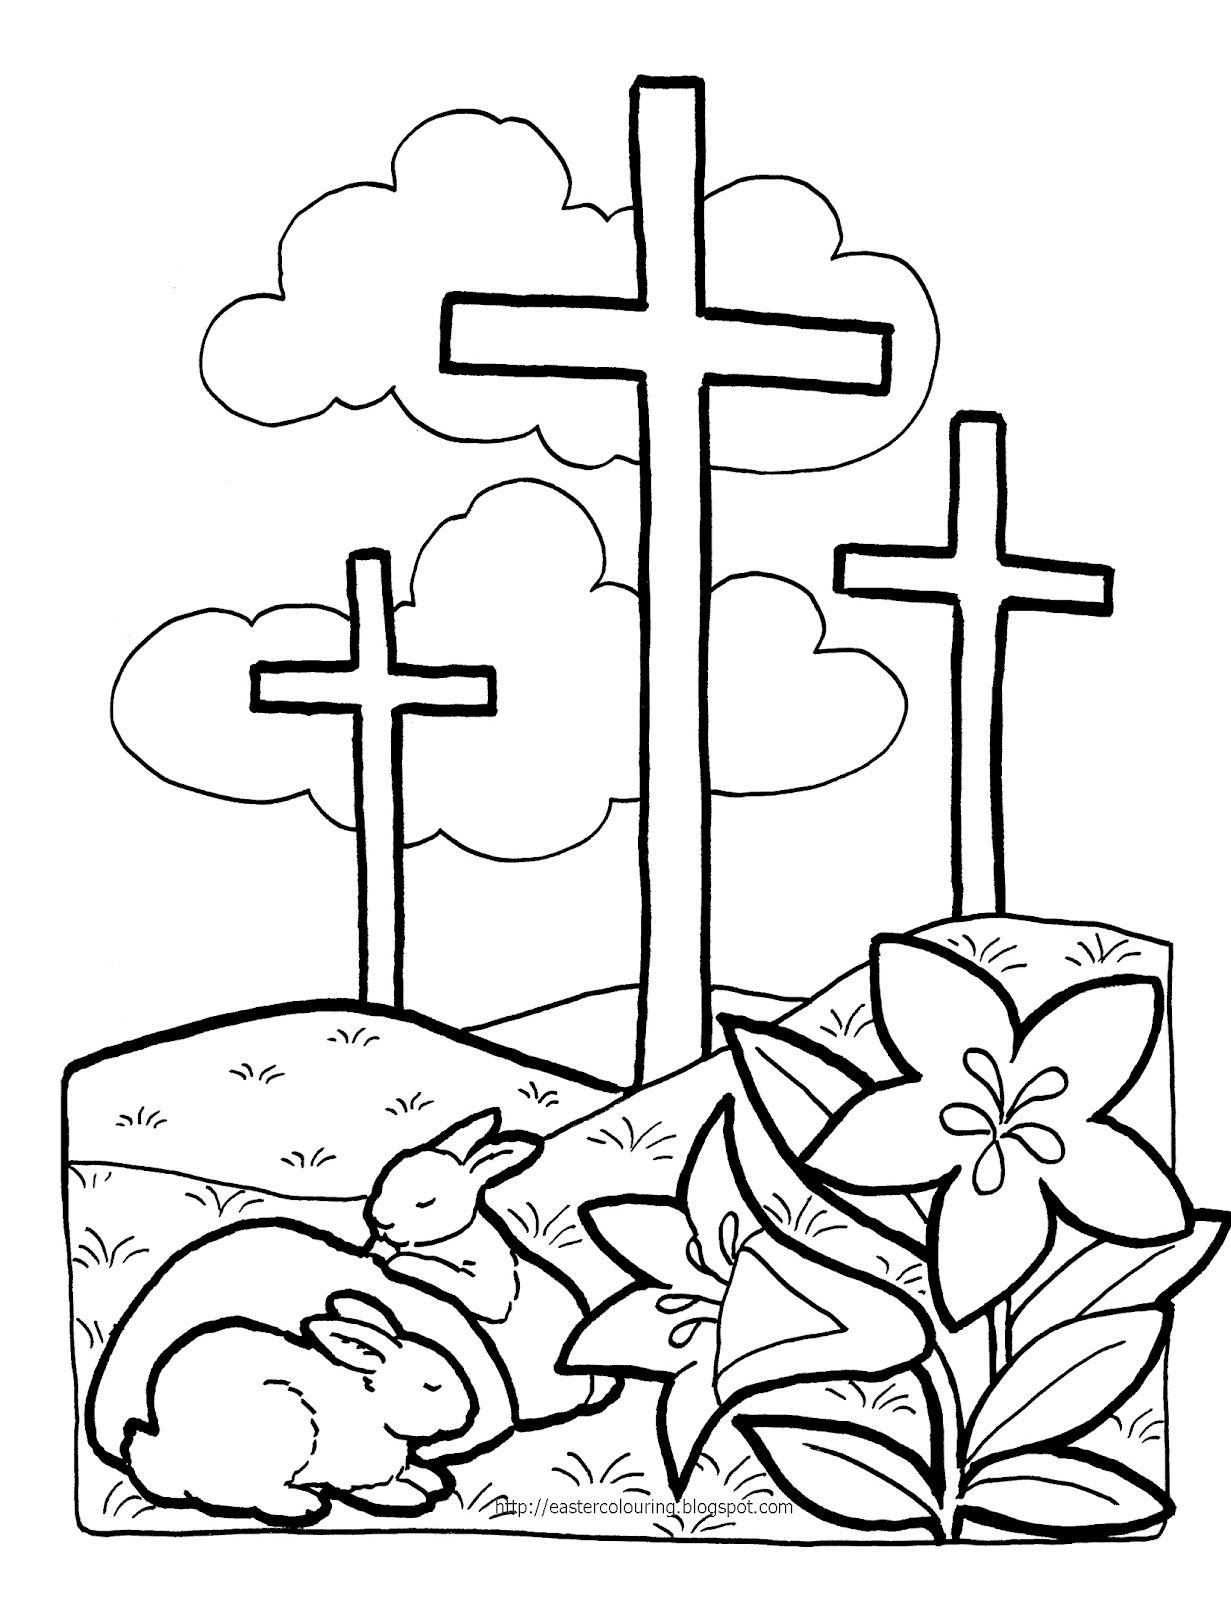 Free Letters From The Easter Bunny And Coloring Pages In Pdf Format Description Hayss I Searched For This On Bing Images